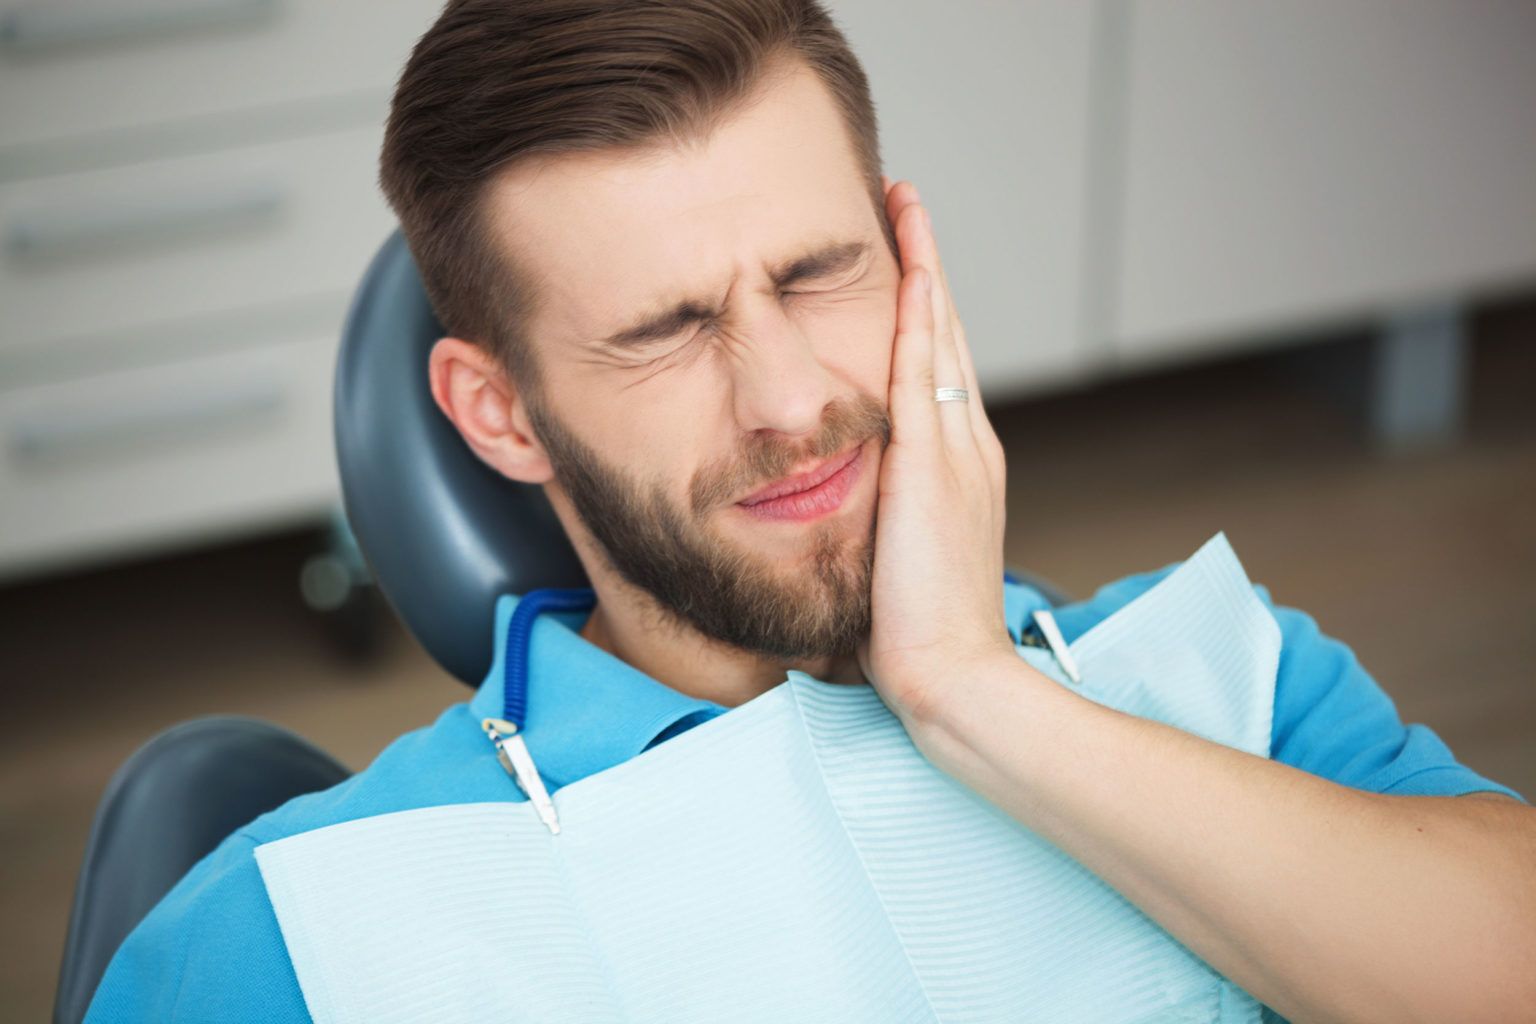 Young-man-with-tooth-pain-sitting-in-a-dentist's-chair.-617773796_4493x2995